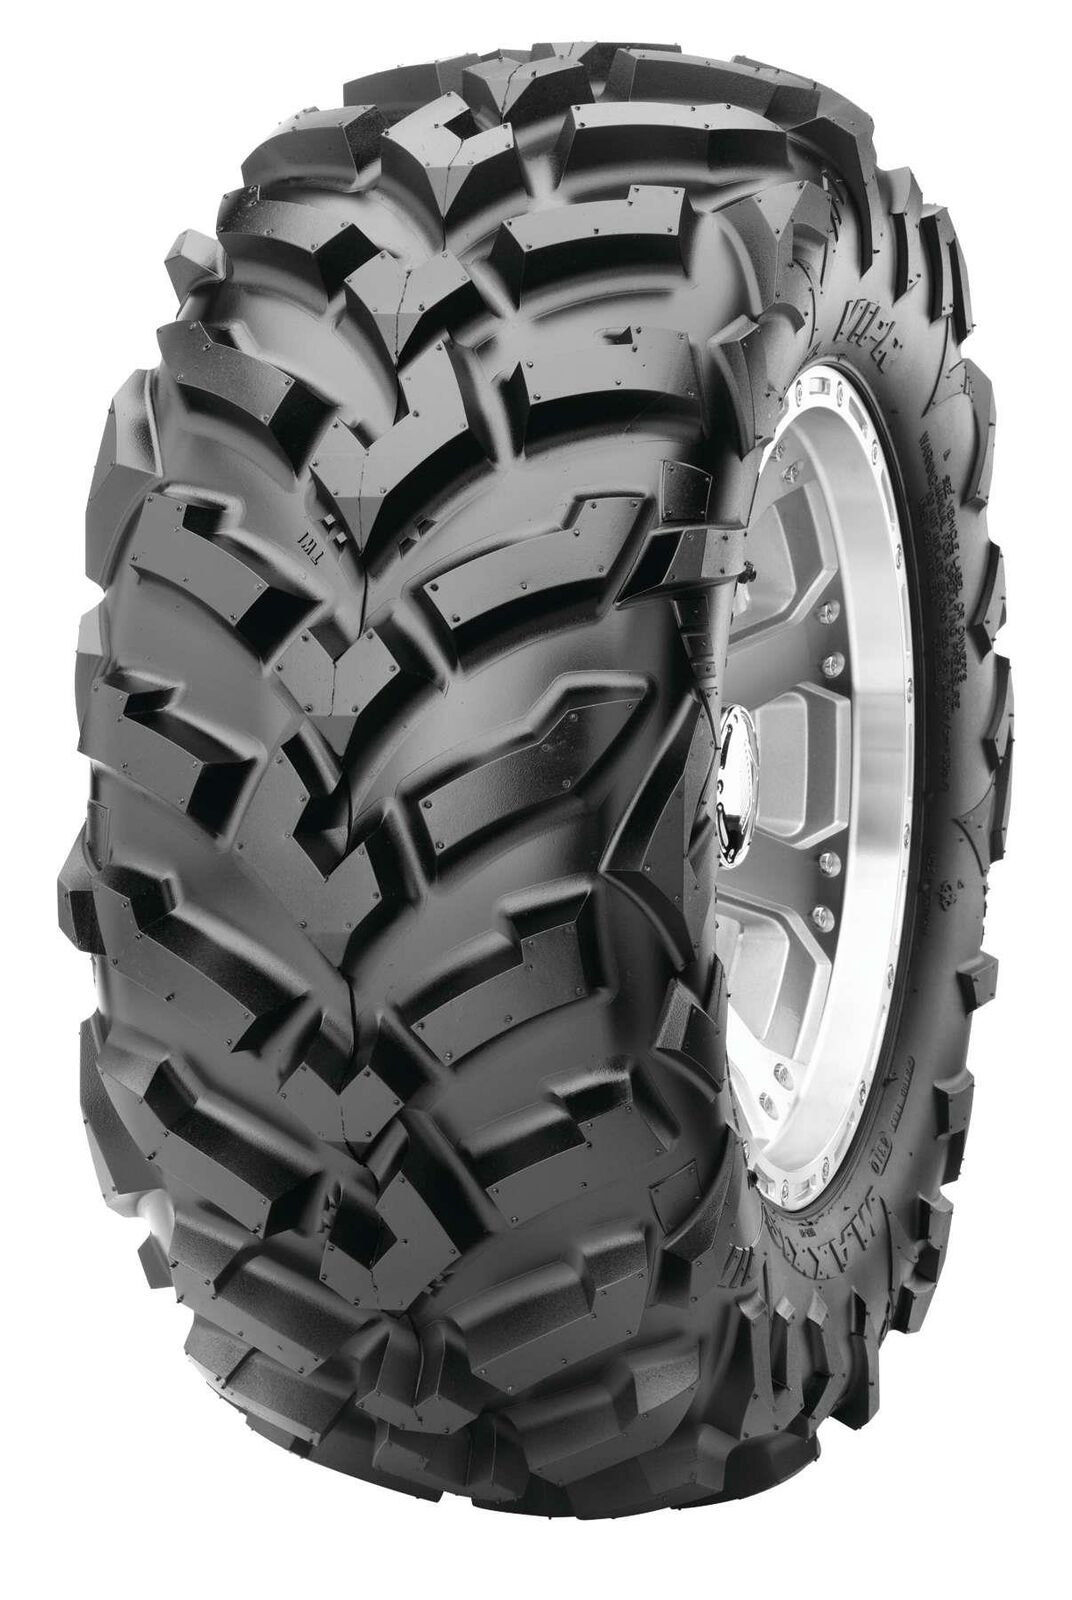 MAXXIS VIPR MU15 AND MU16 RADIAL TIRES TM00415100